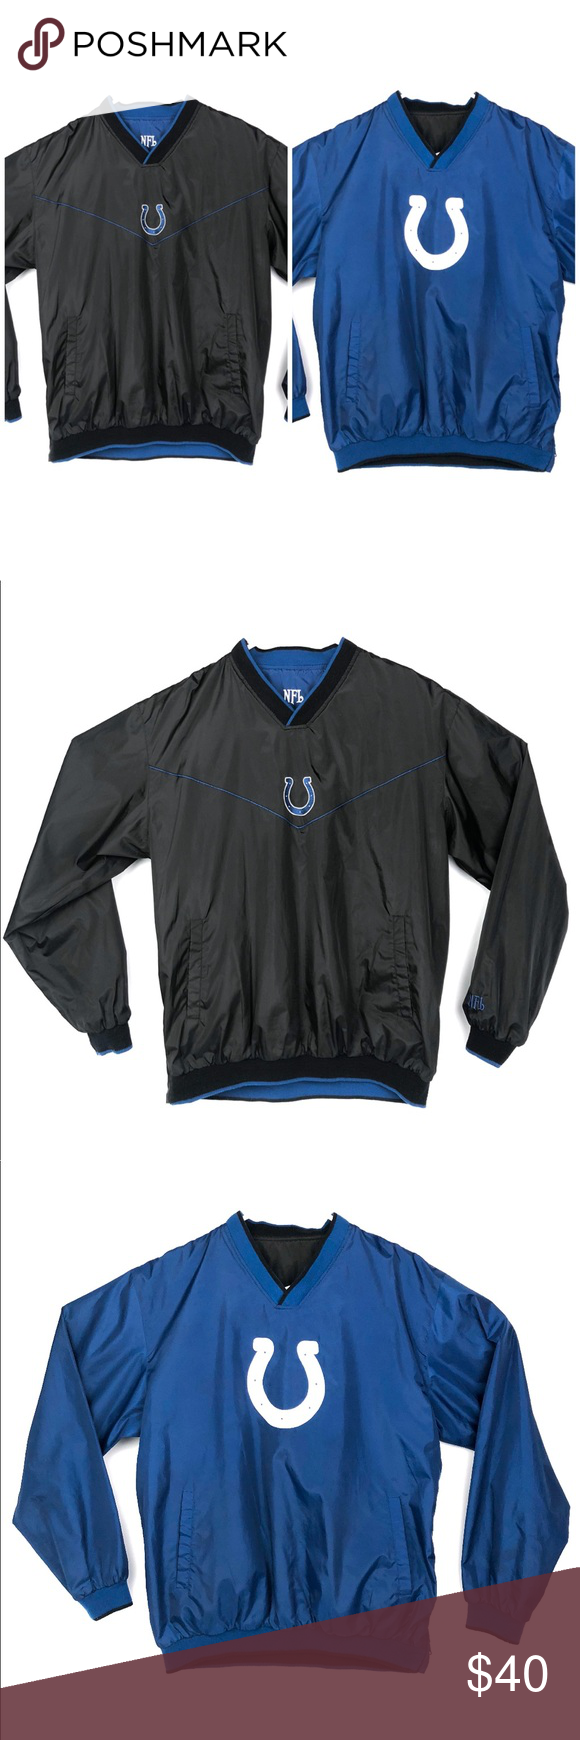 finest selection 63595 4d1d1 NFL Indianapolis Colts Reversible Pullover Jacket Actual ...